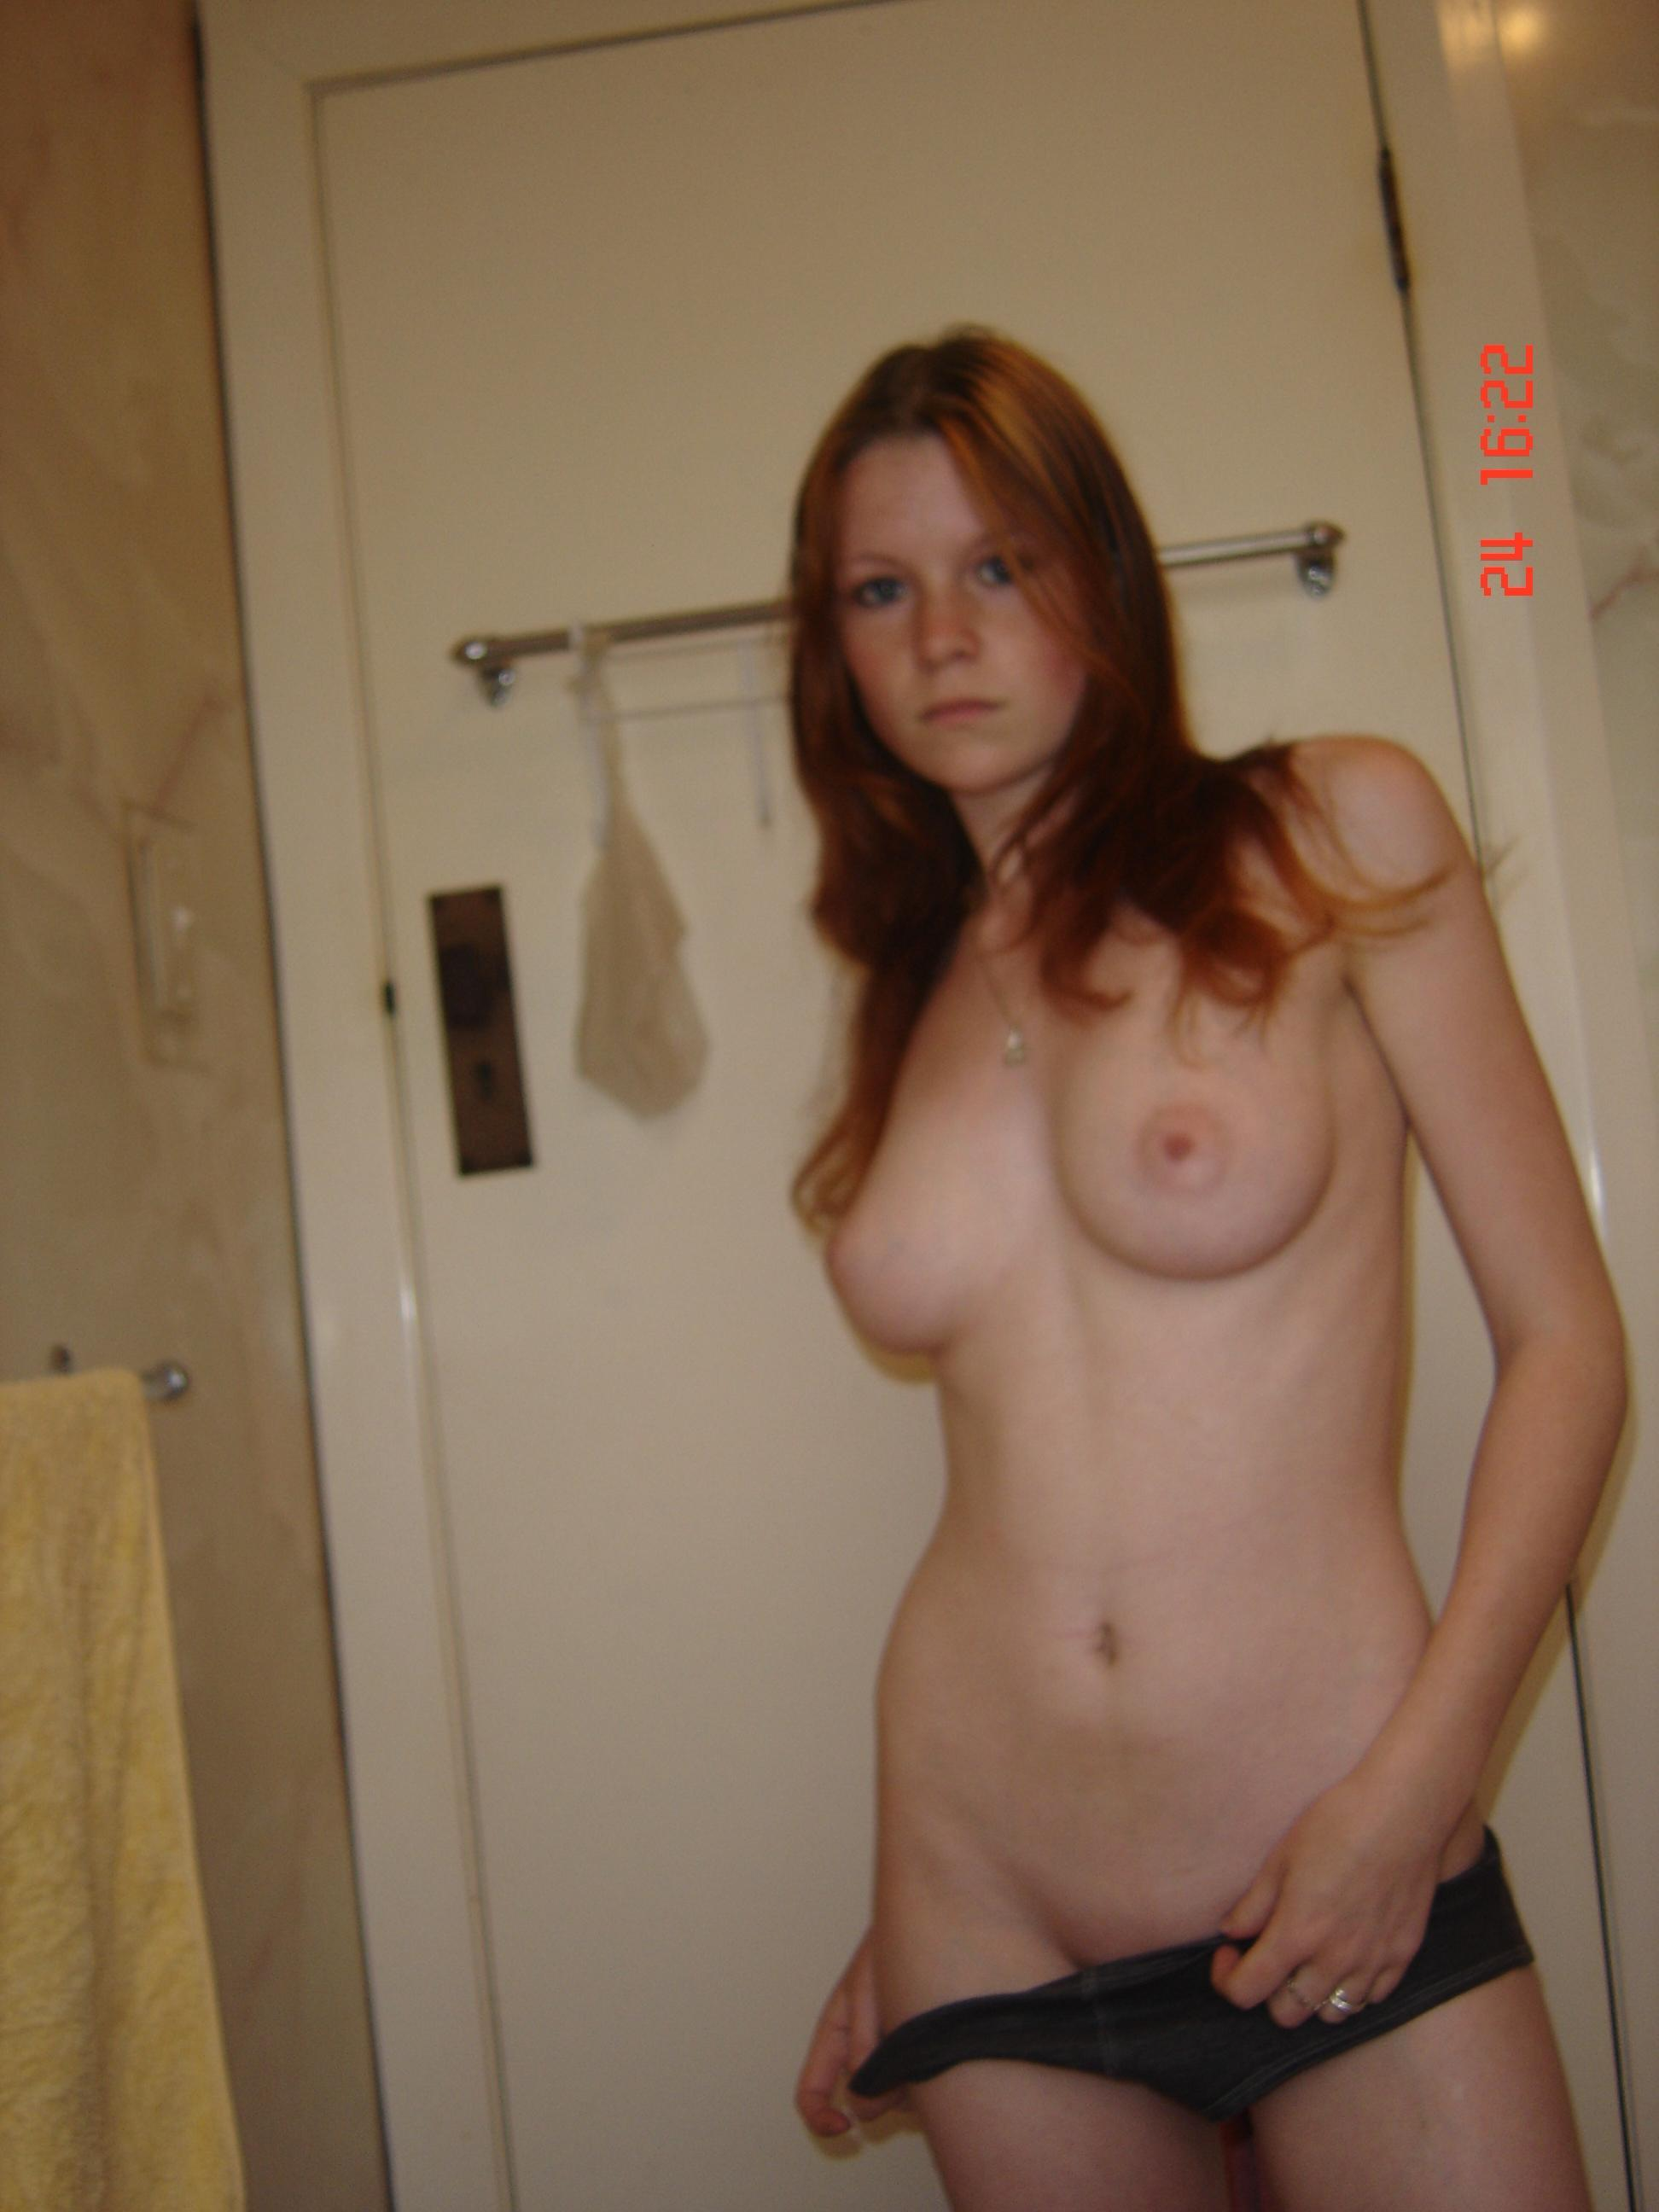 Nude women sexual intercourse